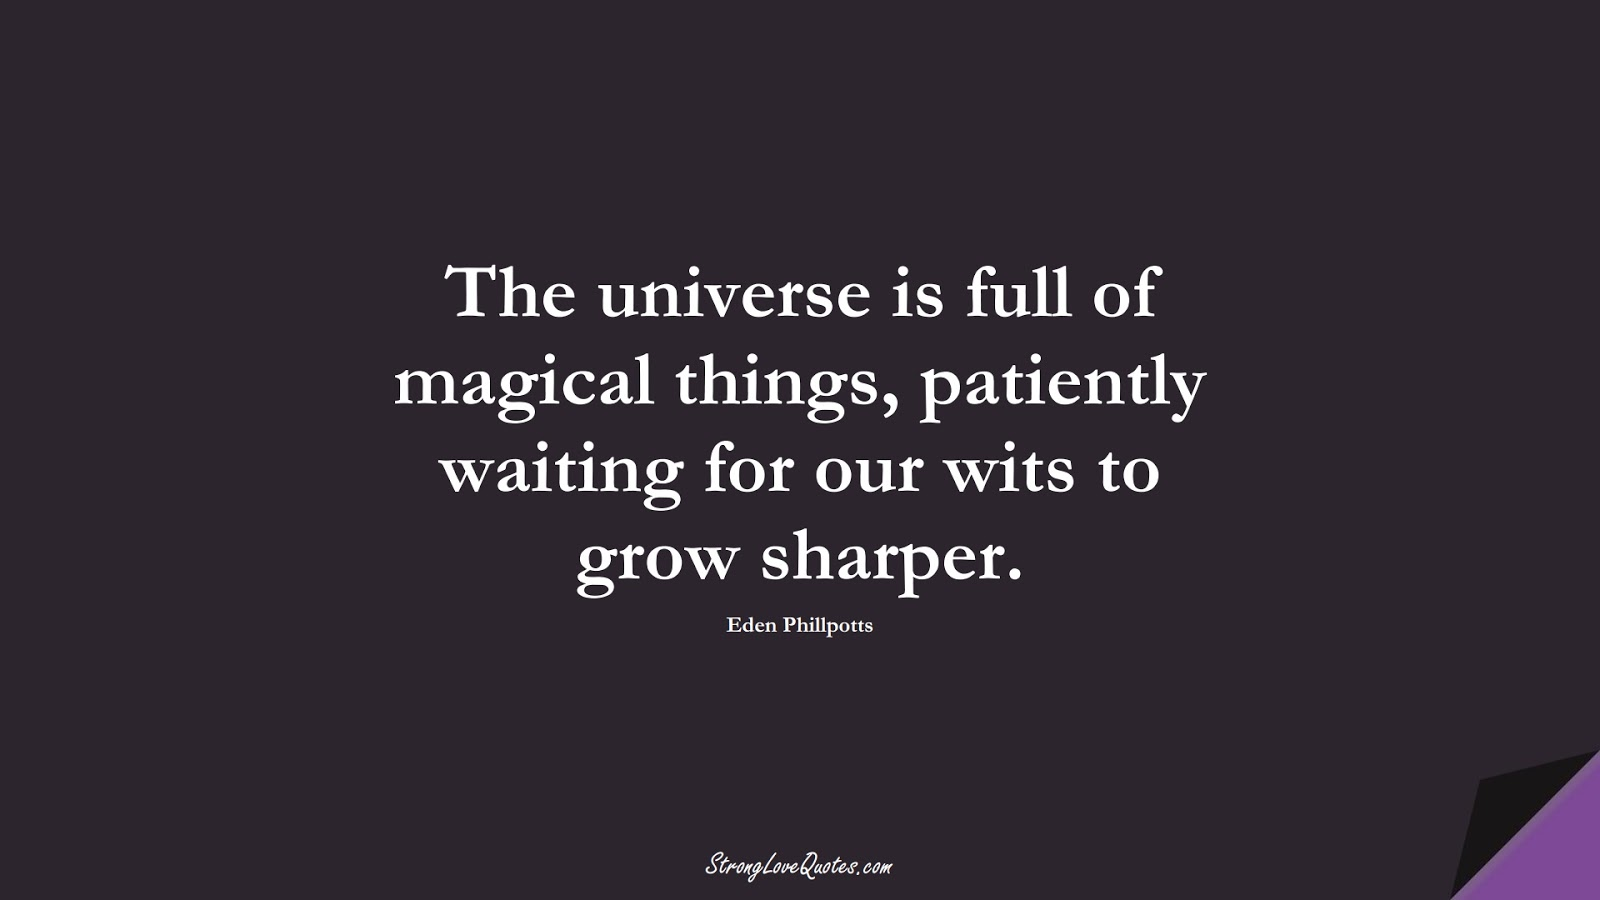 The universe is full of magical things, patiently waiting for our wits to grow sharper. (Eden Phillpotts);  #KnowledgeQuotes